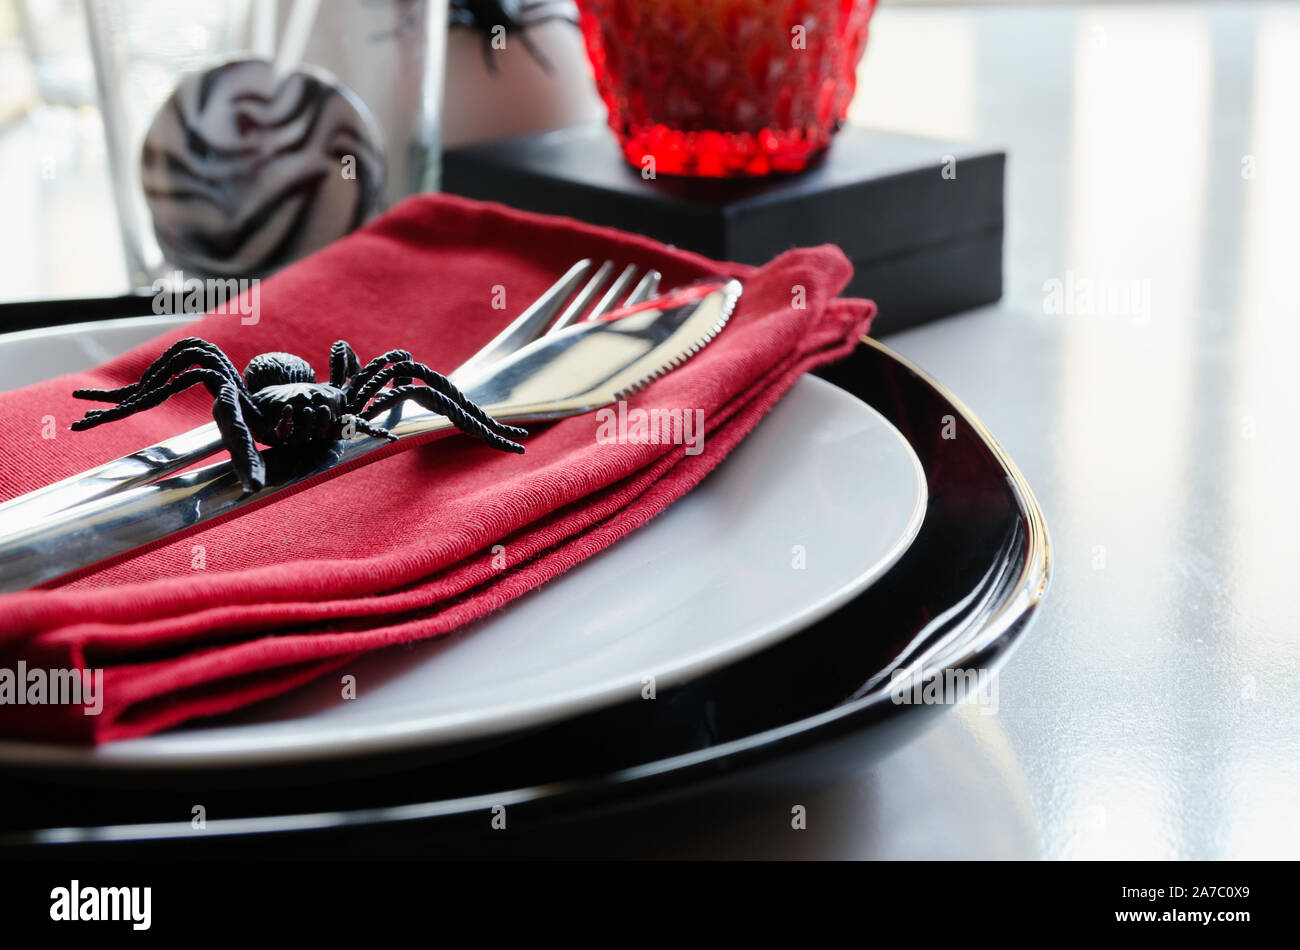 Close Up Of Halloween Table Settings In Red Black Colors Happy Halloween Party Concept Stock Photo Alamy